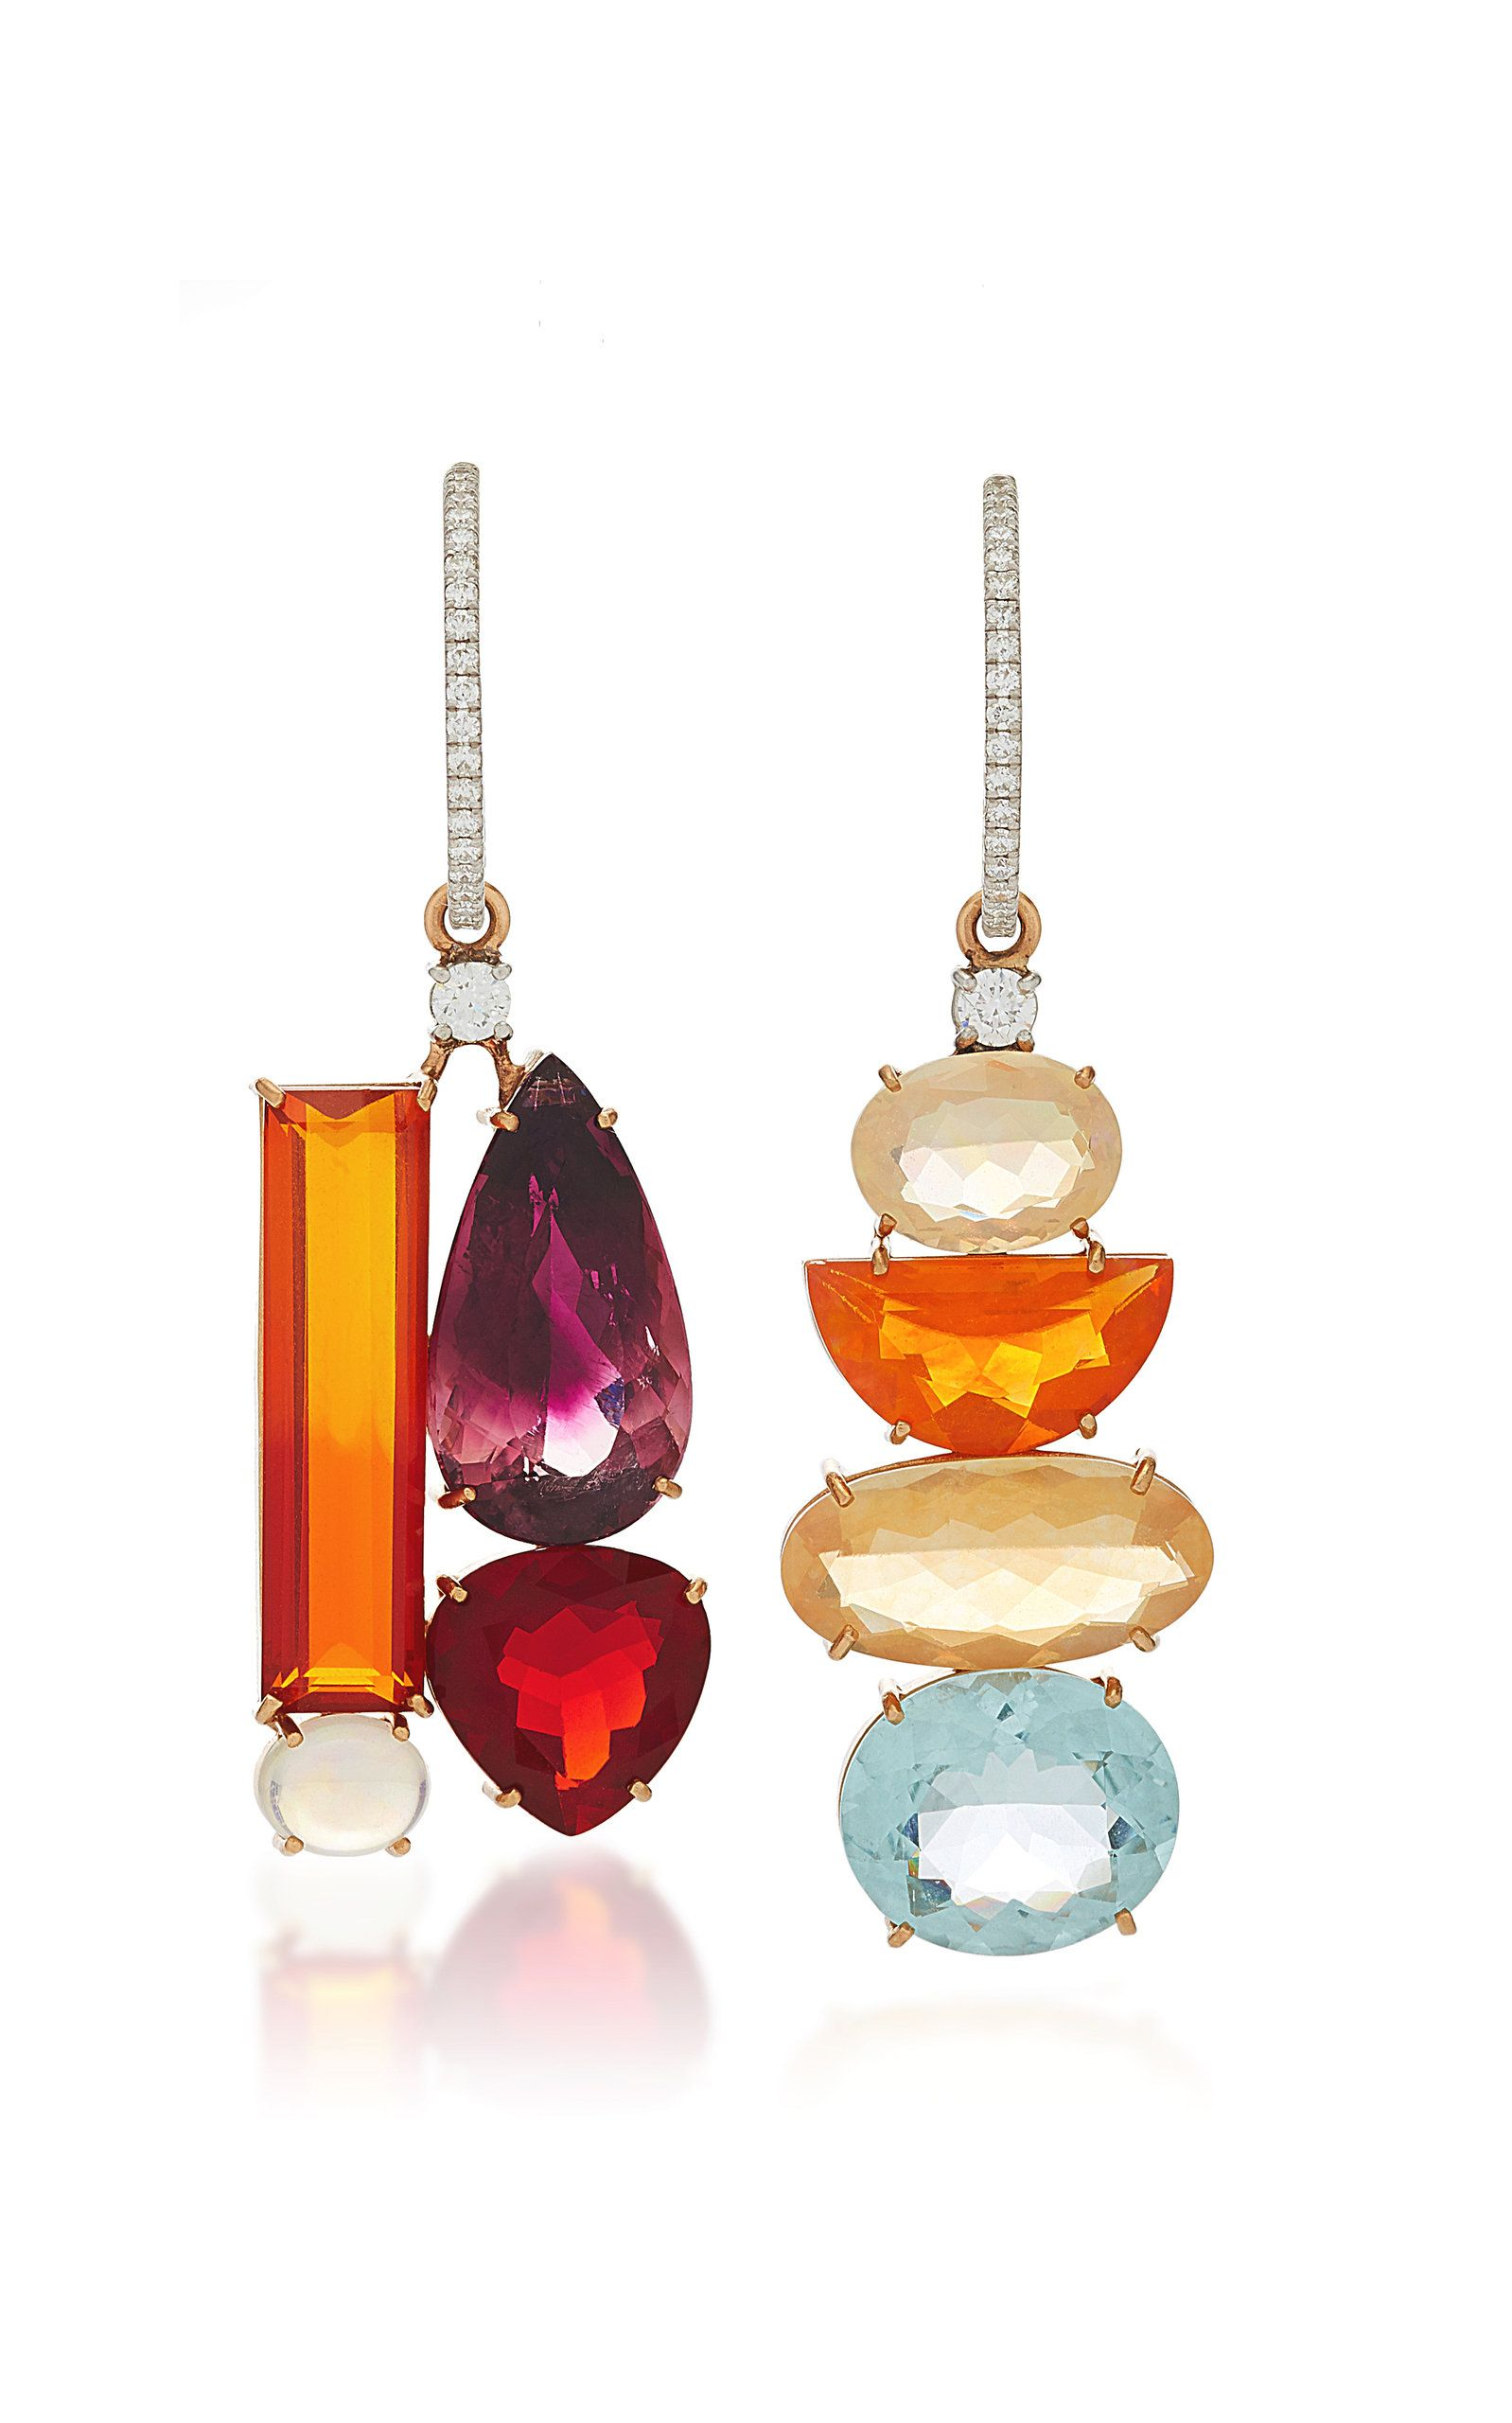 f00906989 One-Of-A-Kind 18K Gold Pink Tourmaline And Fire Opal Mismatch Charm Earrings  by IRENE NEUWIRTH for Preorder on Moda Operandi